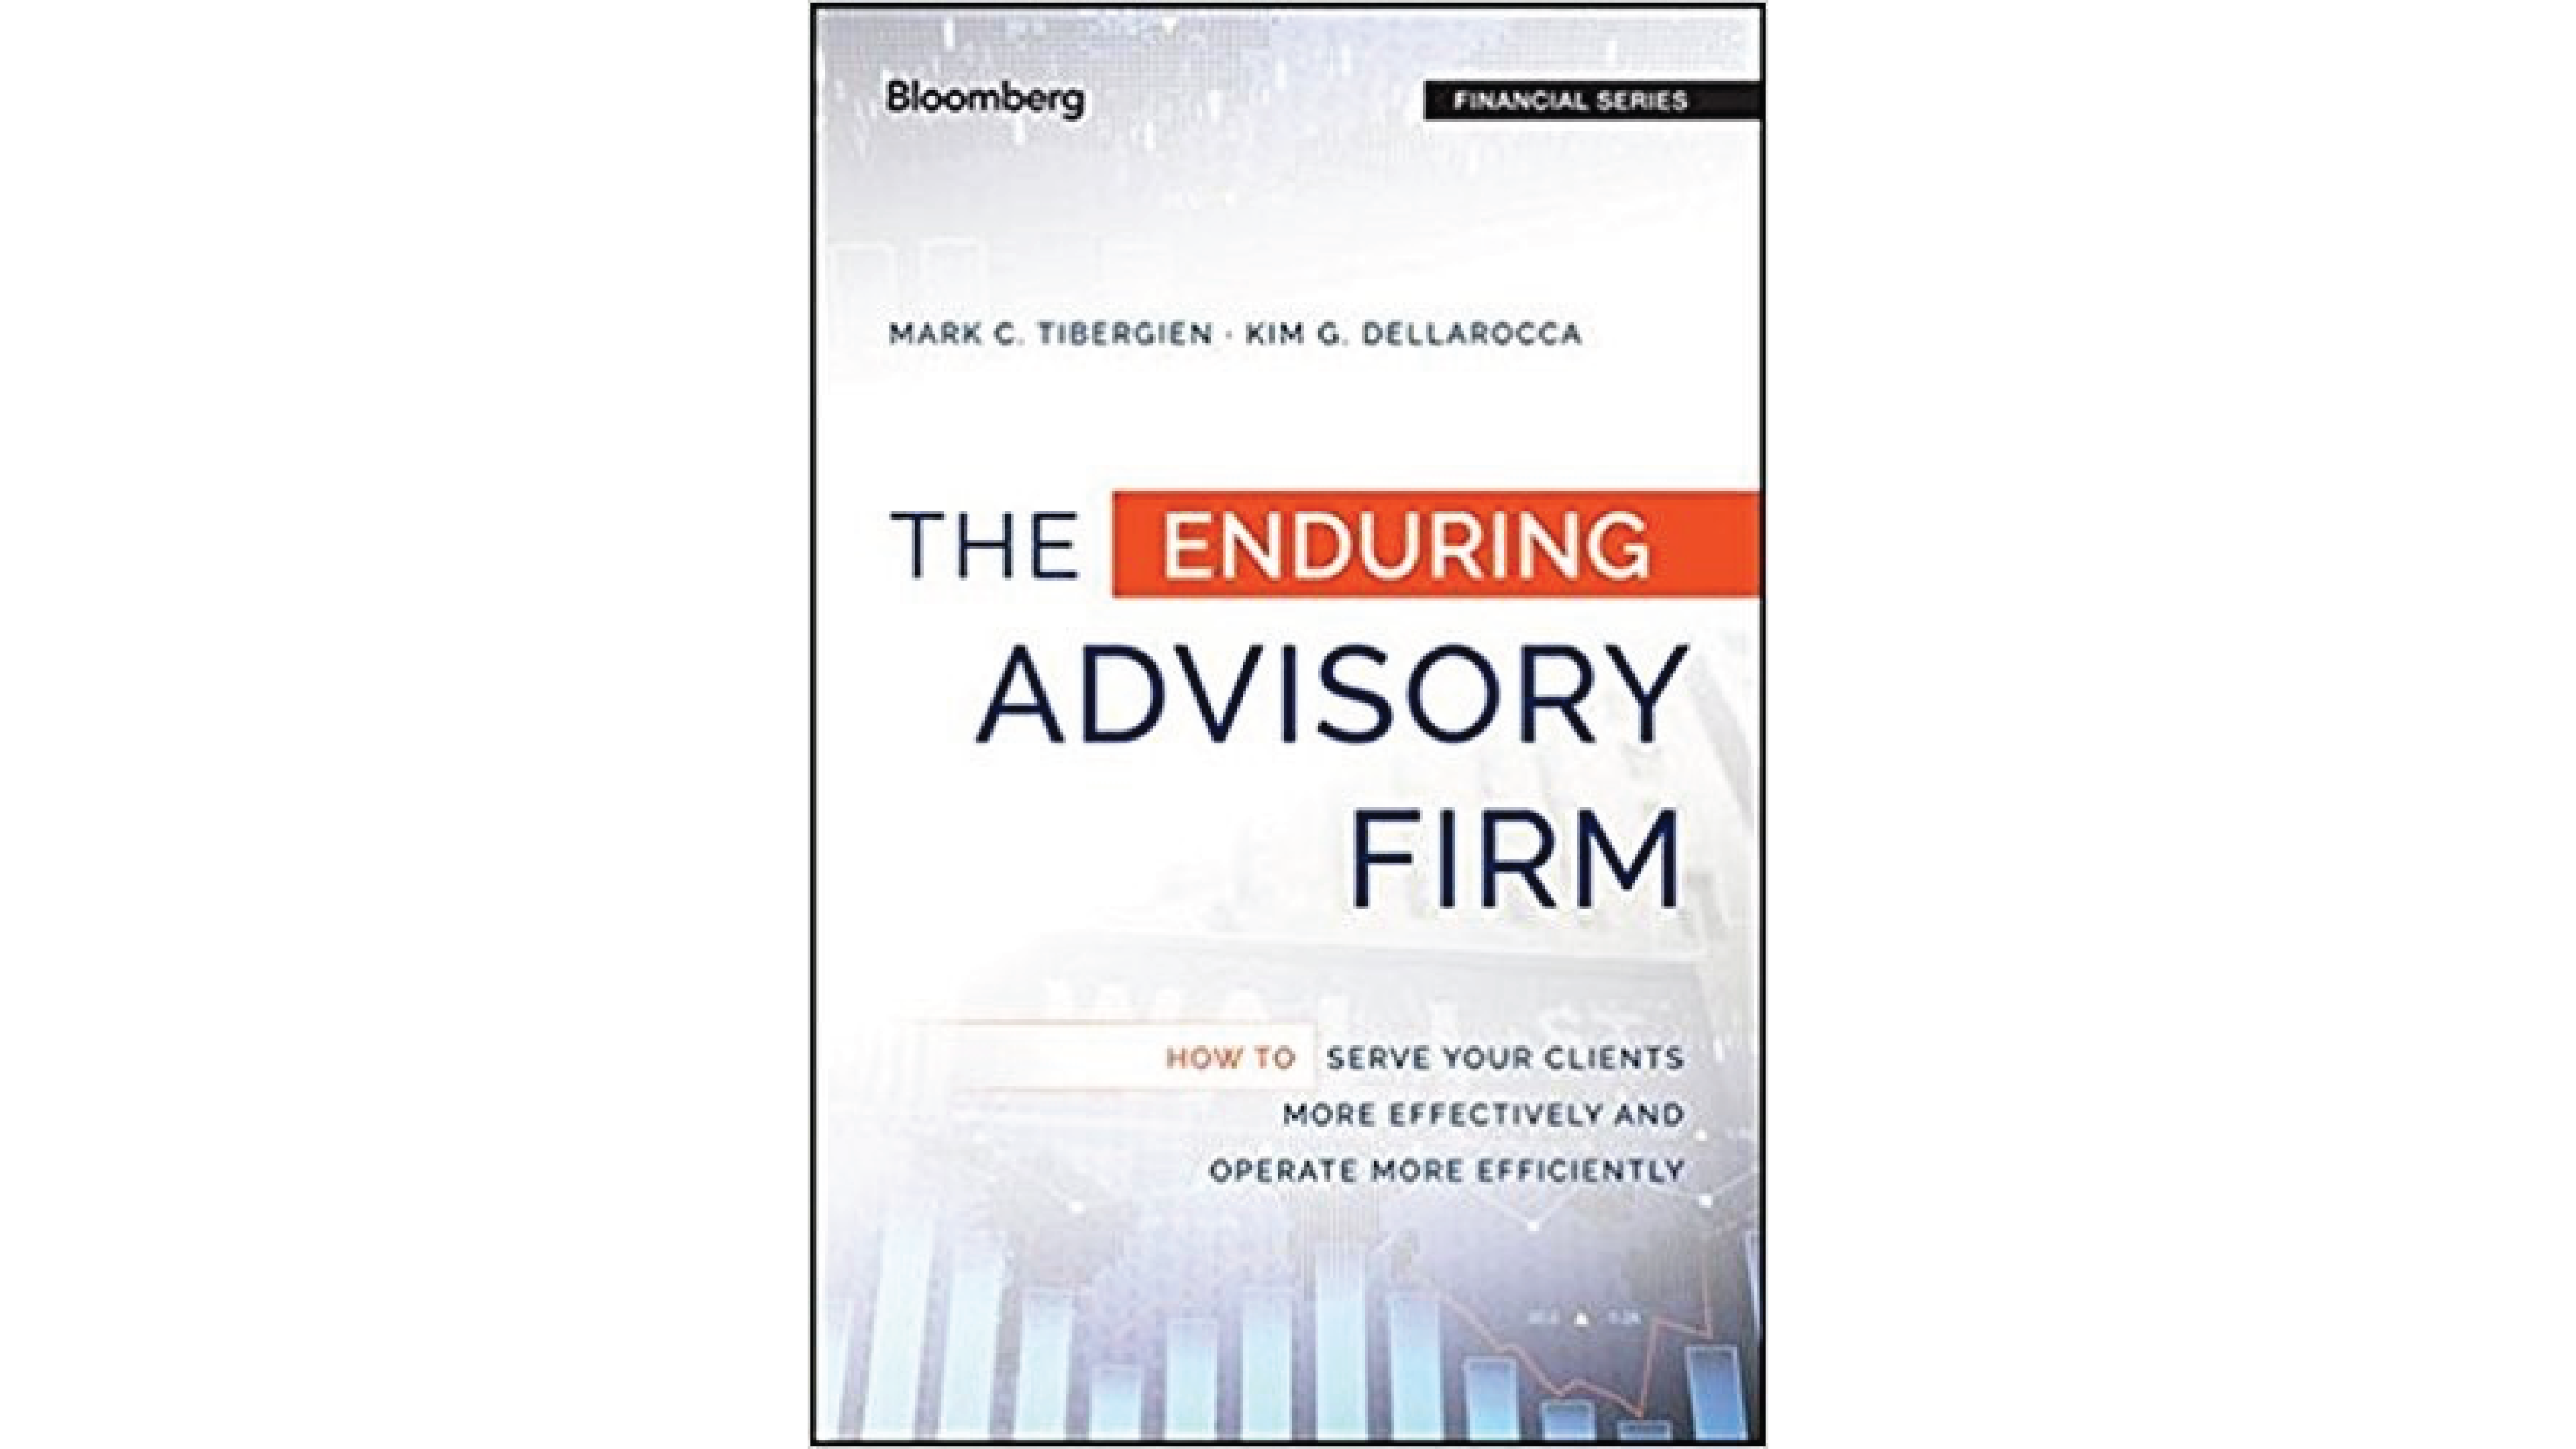 Mark Tibergien's Latest Book Could Put RIA Consultants Out of Business